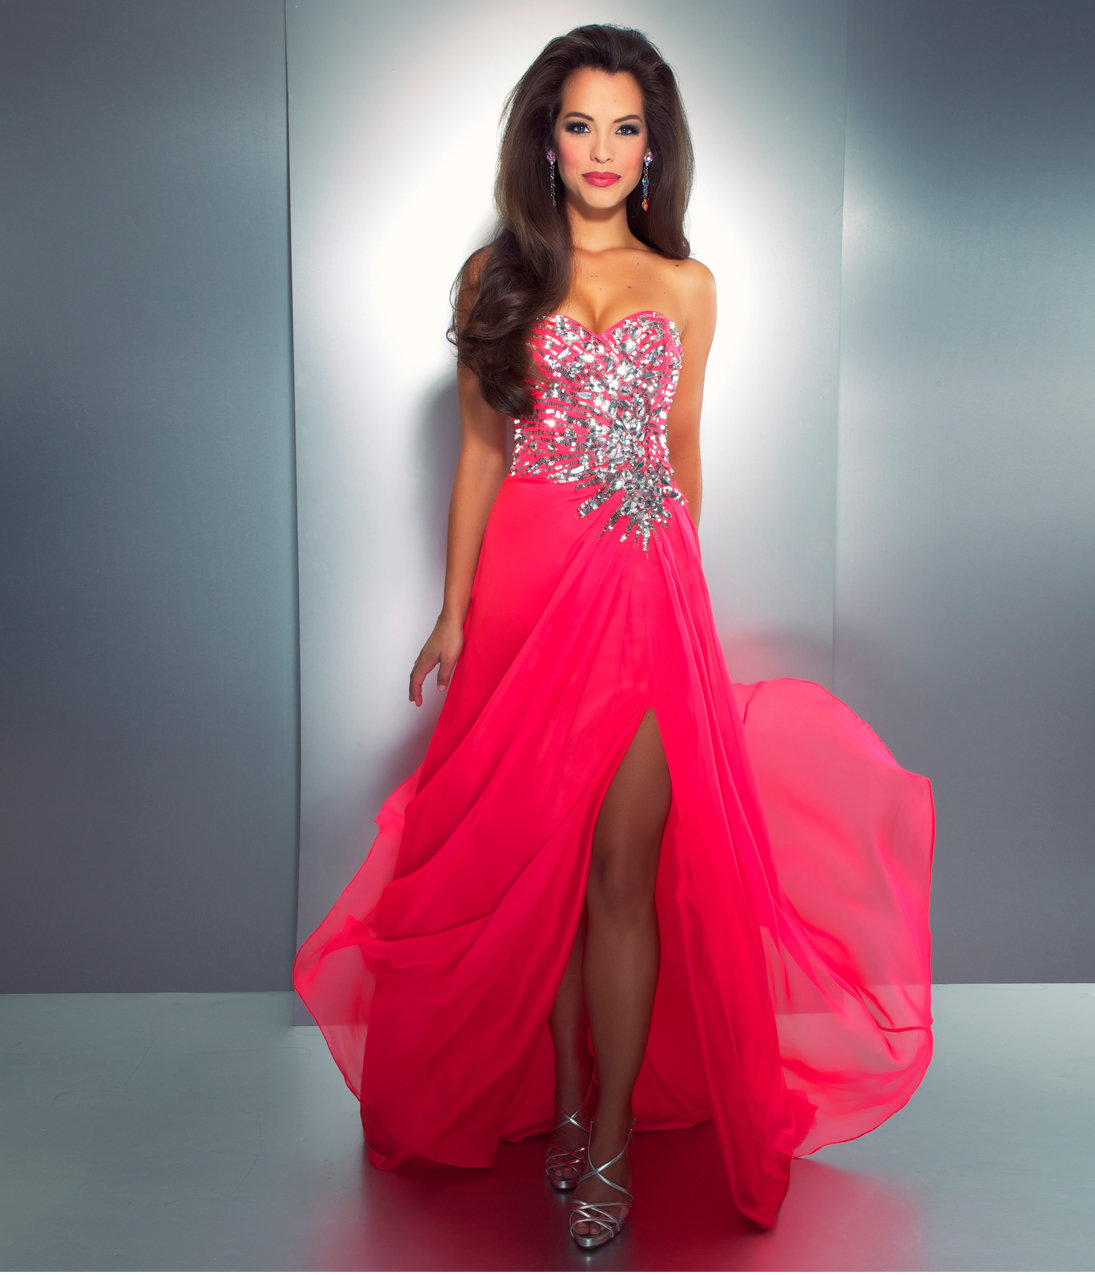 eb6f94f7018 Bright Pink Evening Dresses - Data Dynamic AG